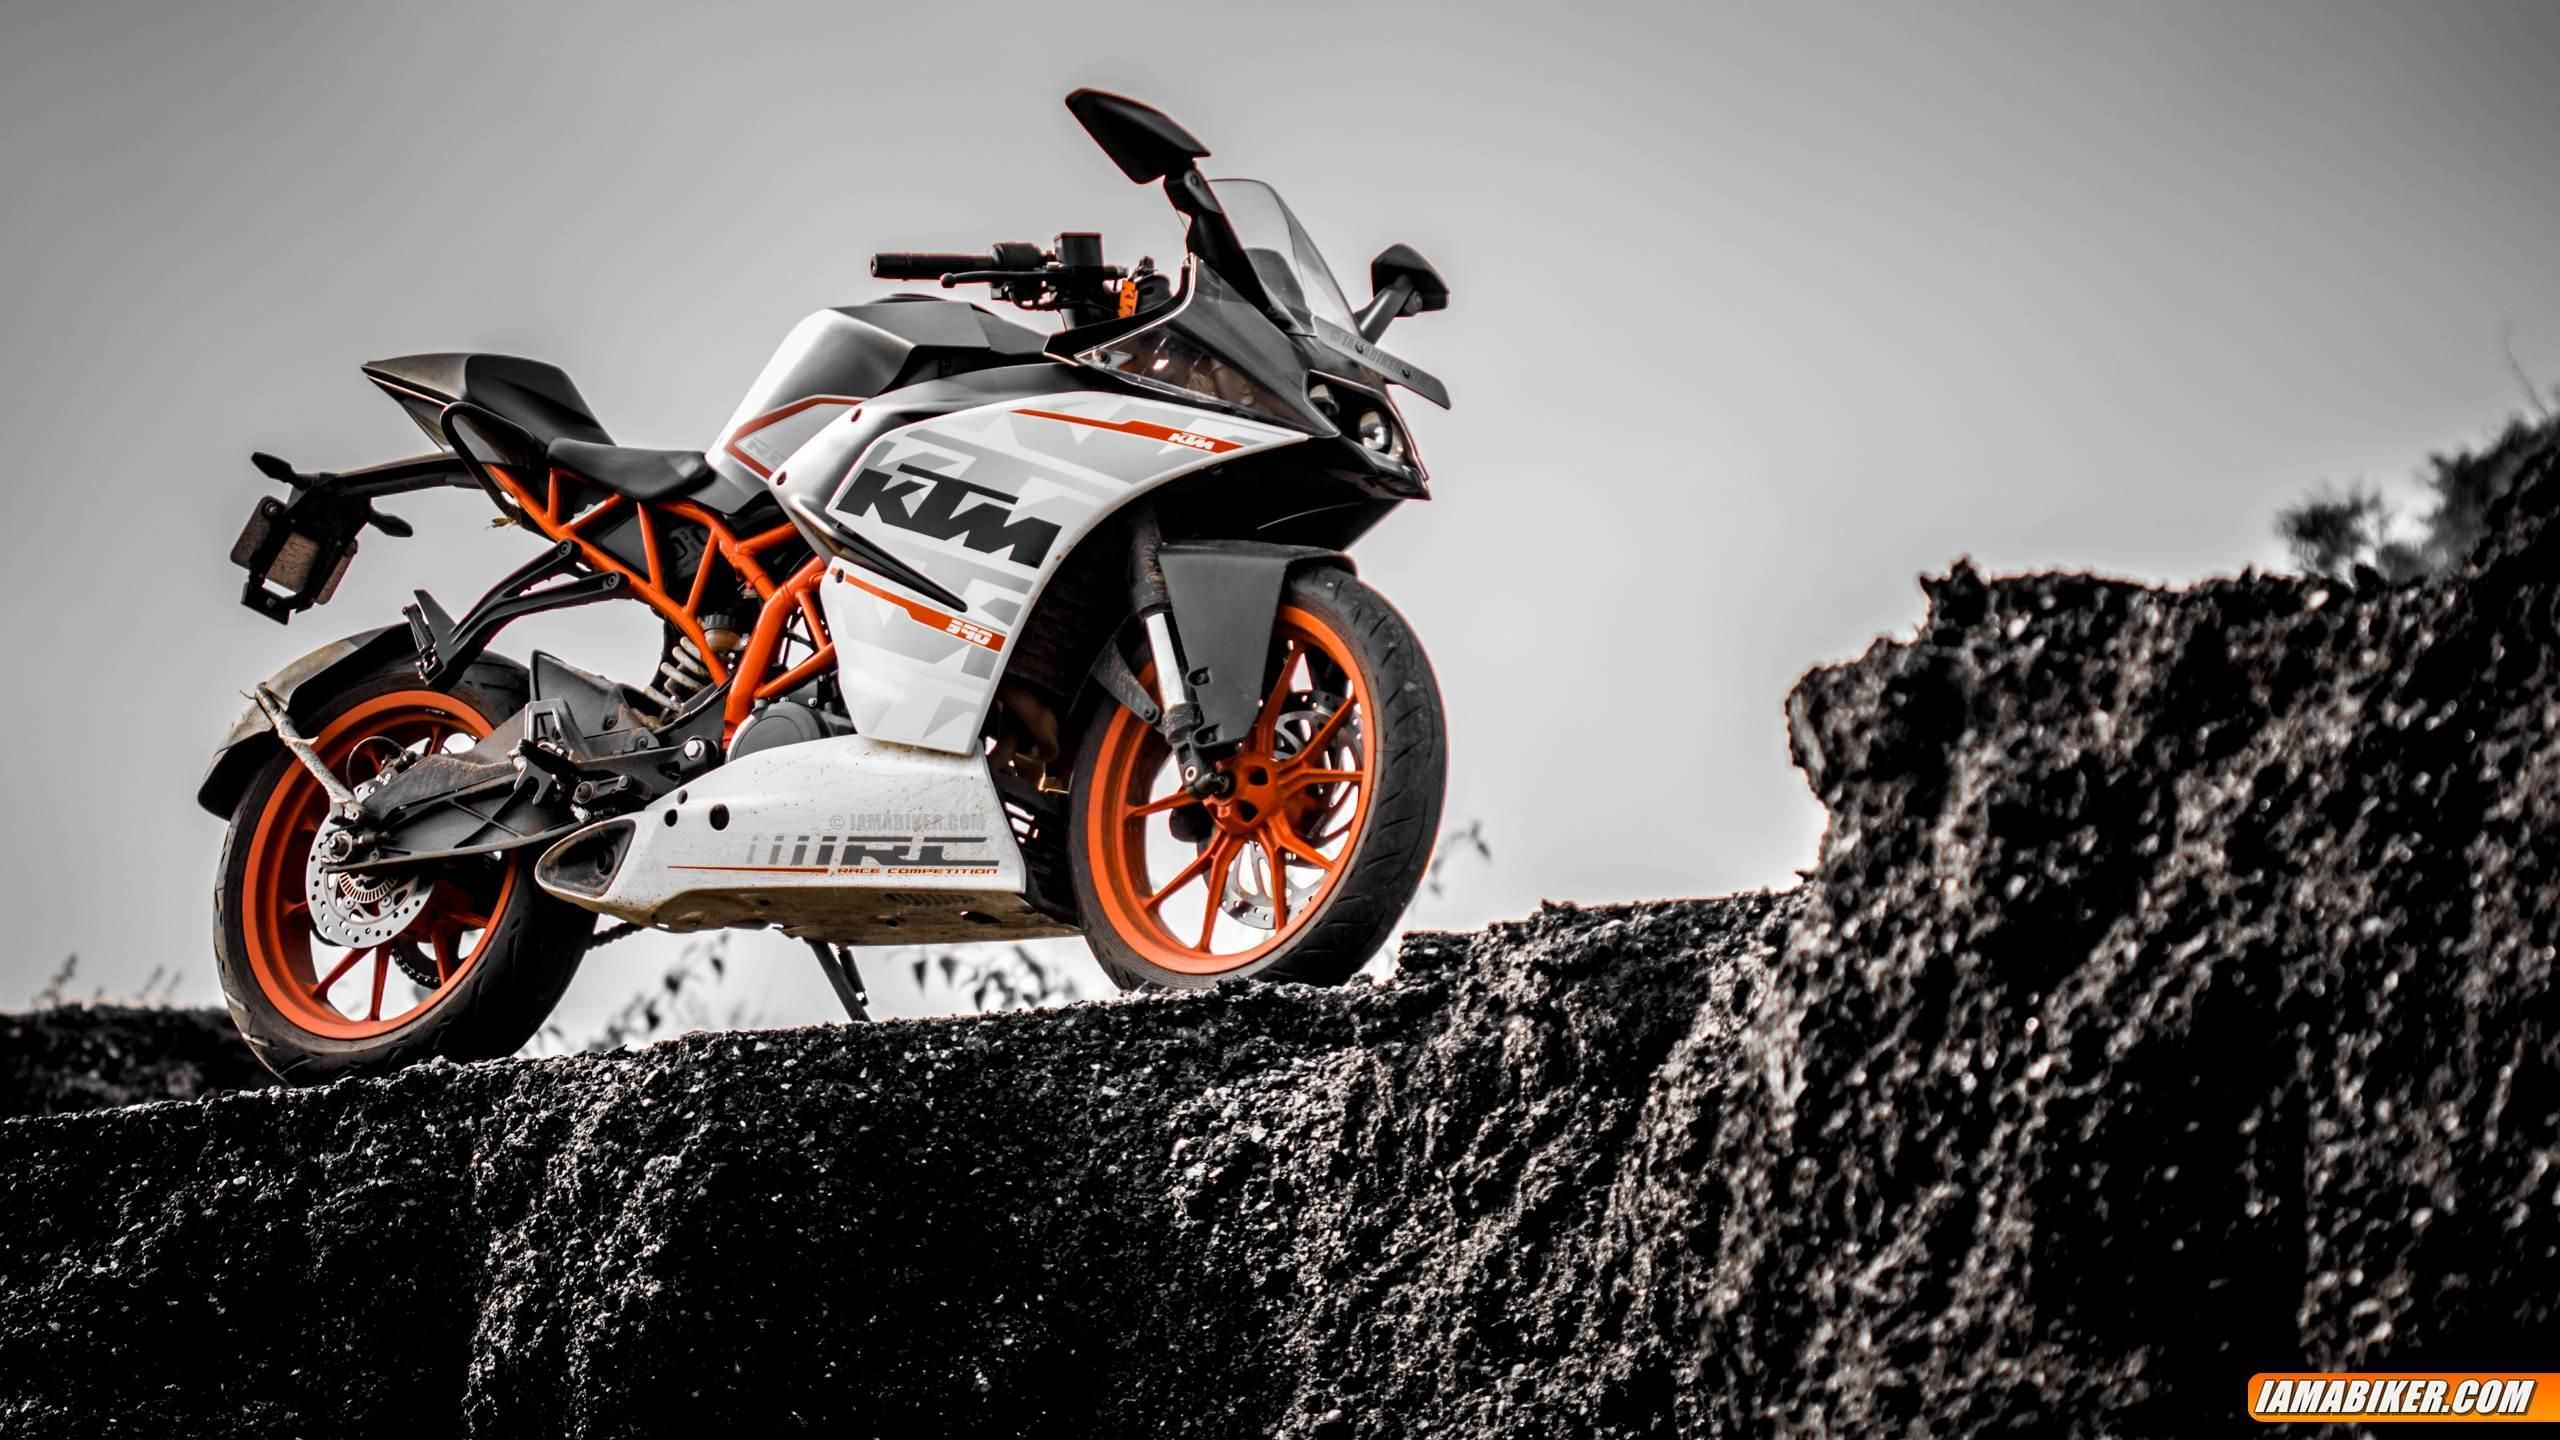 Ktm Rc 390 Hd Wallpapers With Images Ktm Duke Bike Ktm Rc